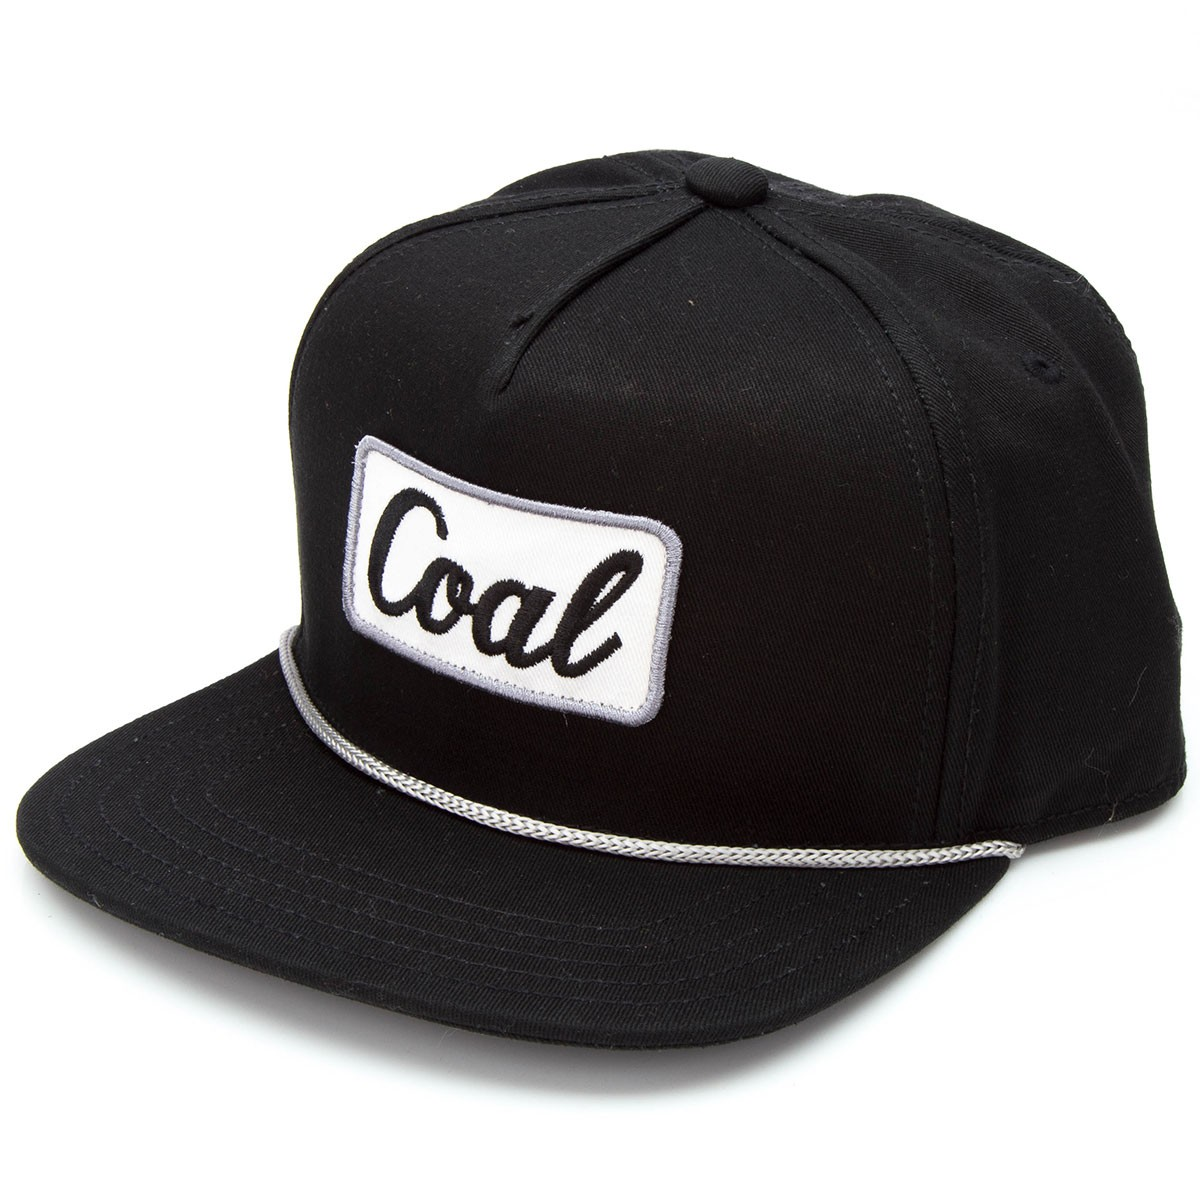 34111575d52 Coal The Palmer Hat